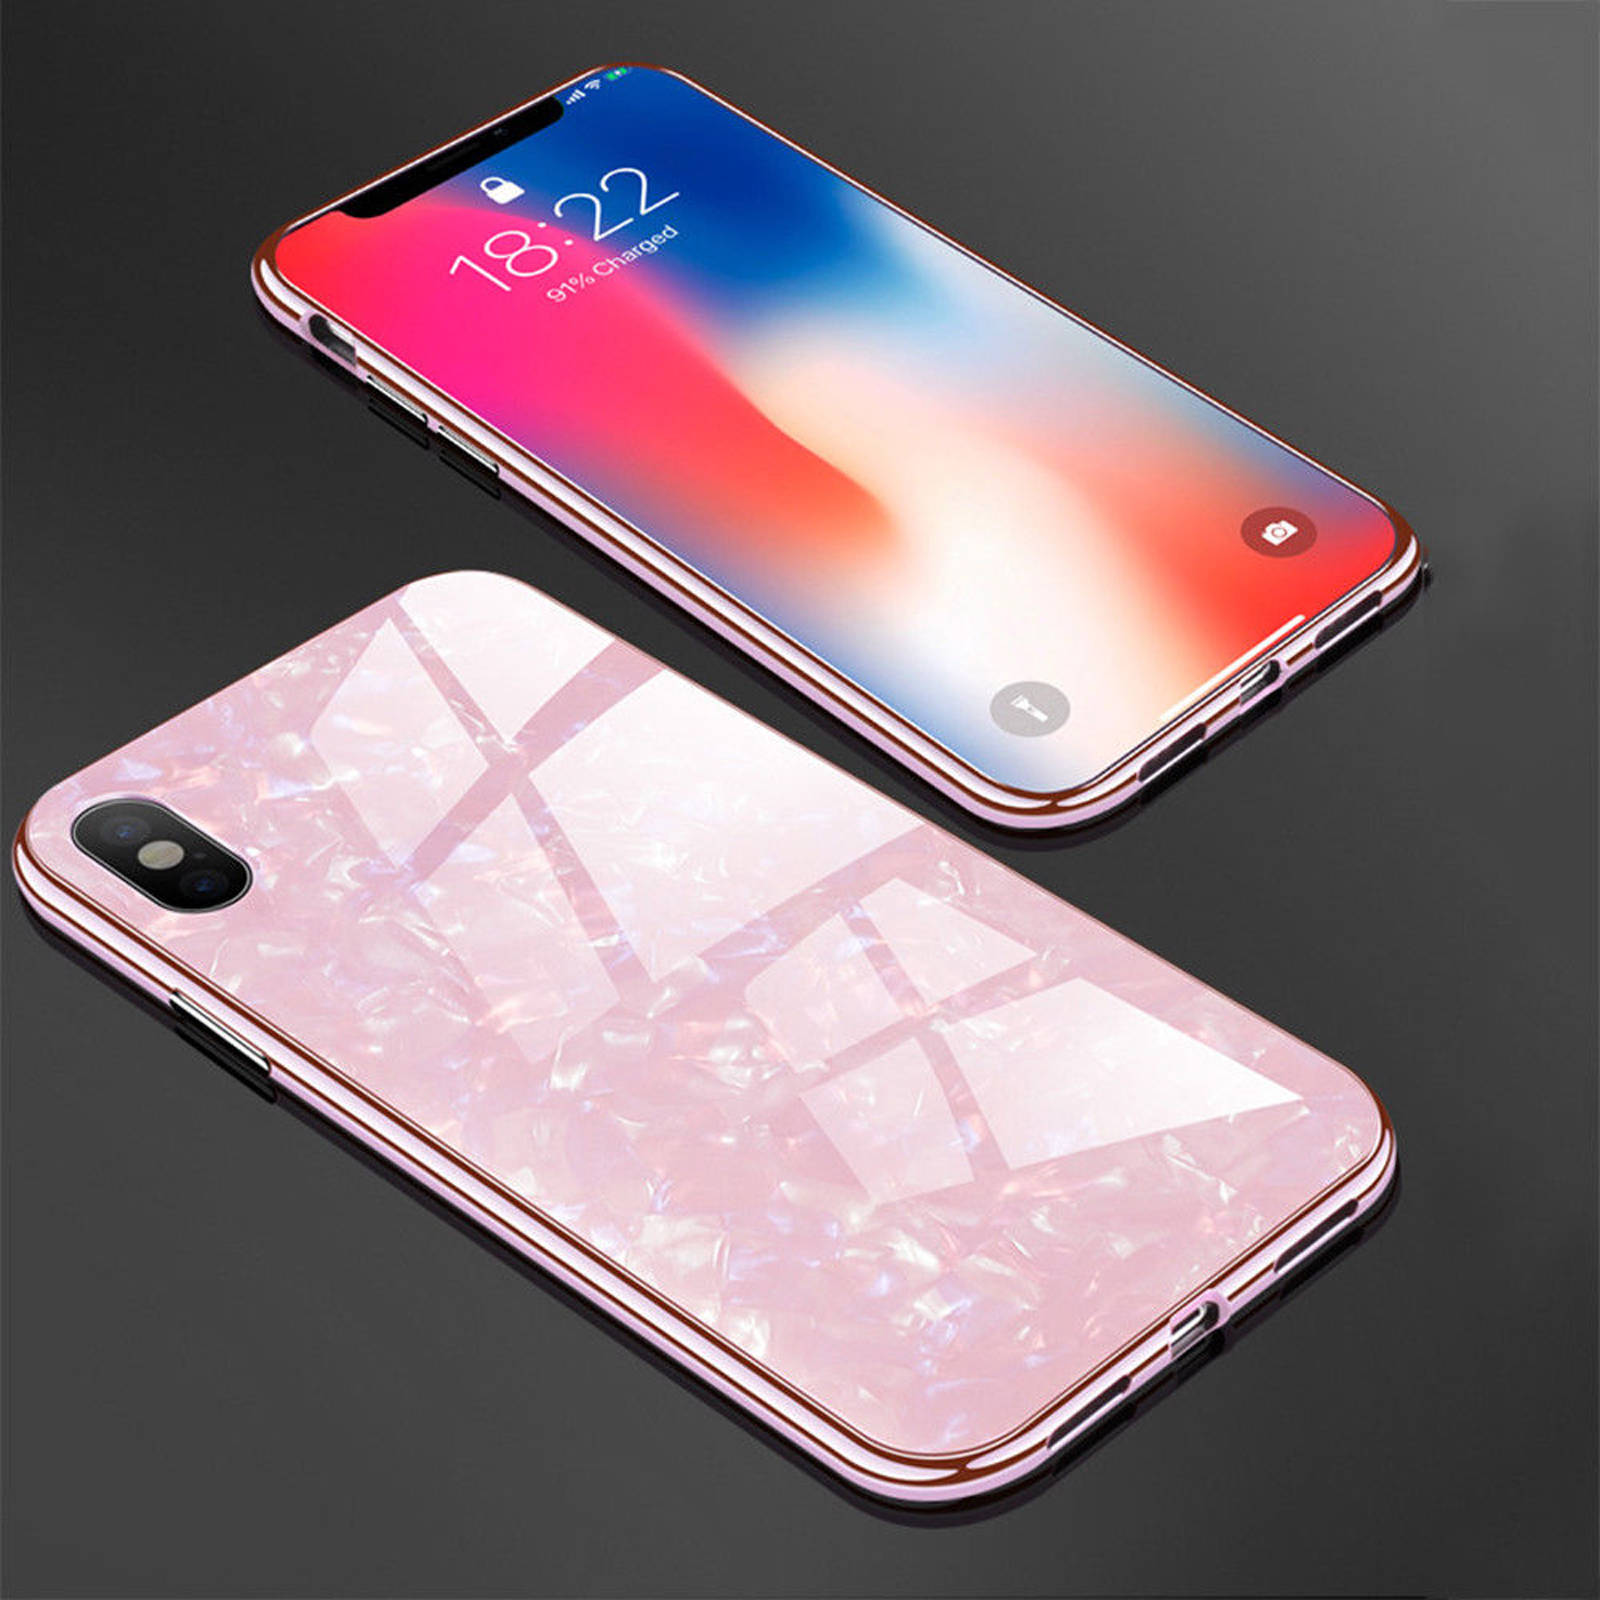 Luxury-Marble-Tempered-Glass-Case-Cover-For-Apple-iPhone-X-XS-XR-Max-10-8-7-6s-6 miniature 35